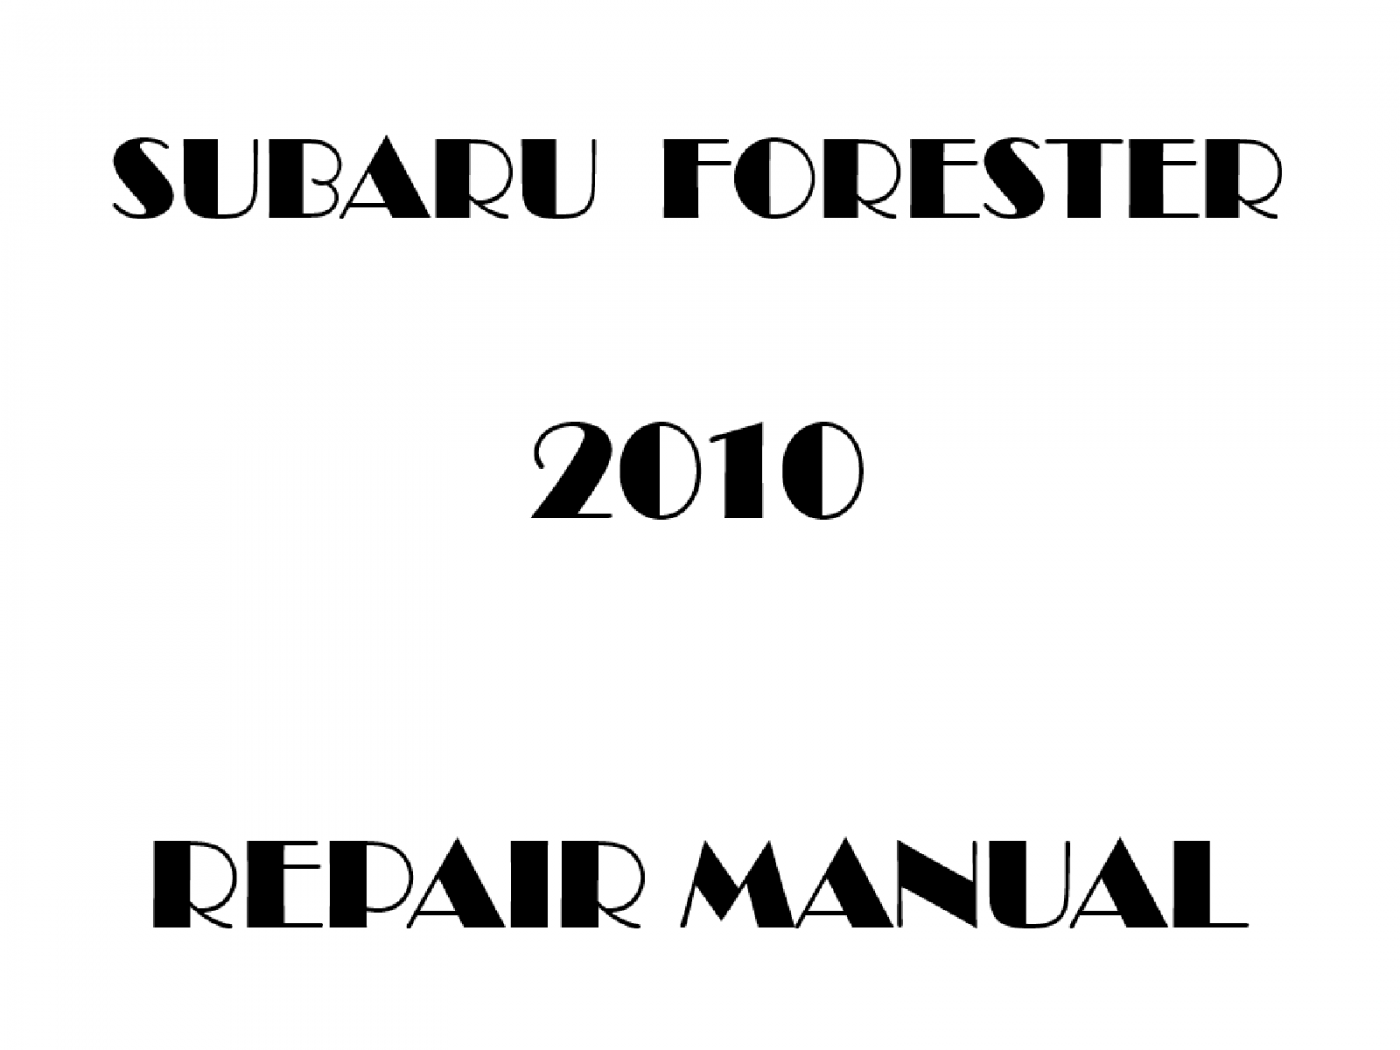 2010 Subaru Forester repair manual